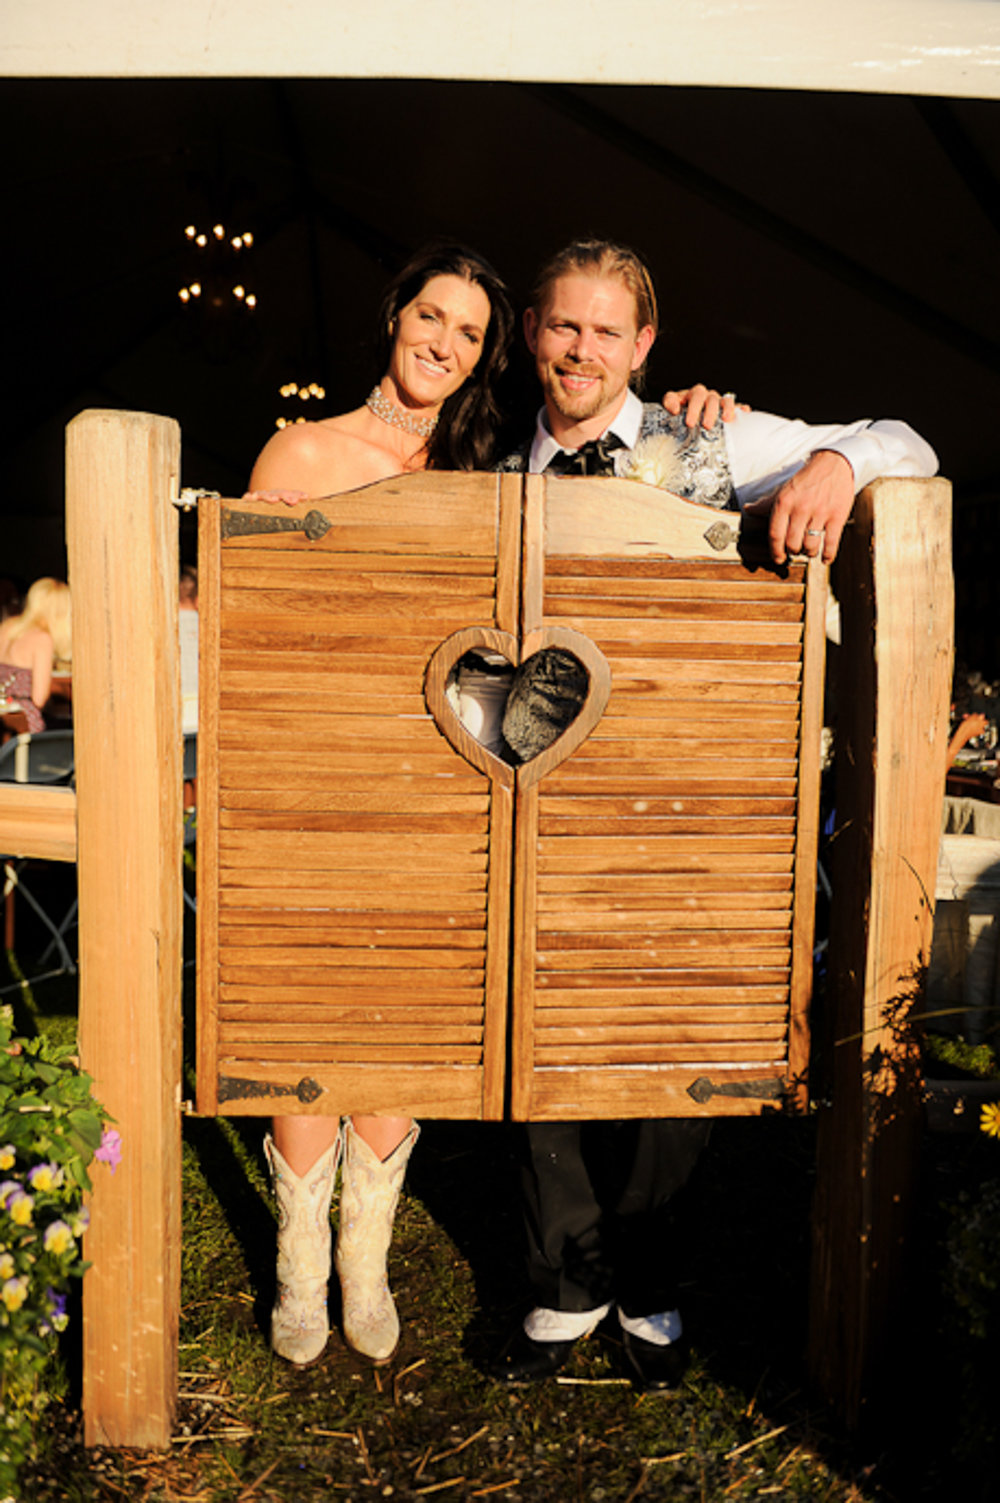 LARA AND WALKER AT THEIR WILD WEST-THEMED WEDDING